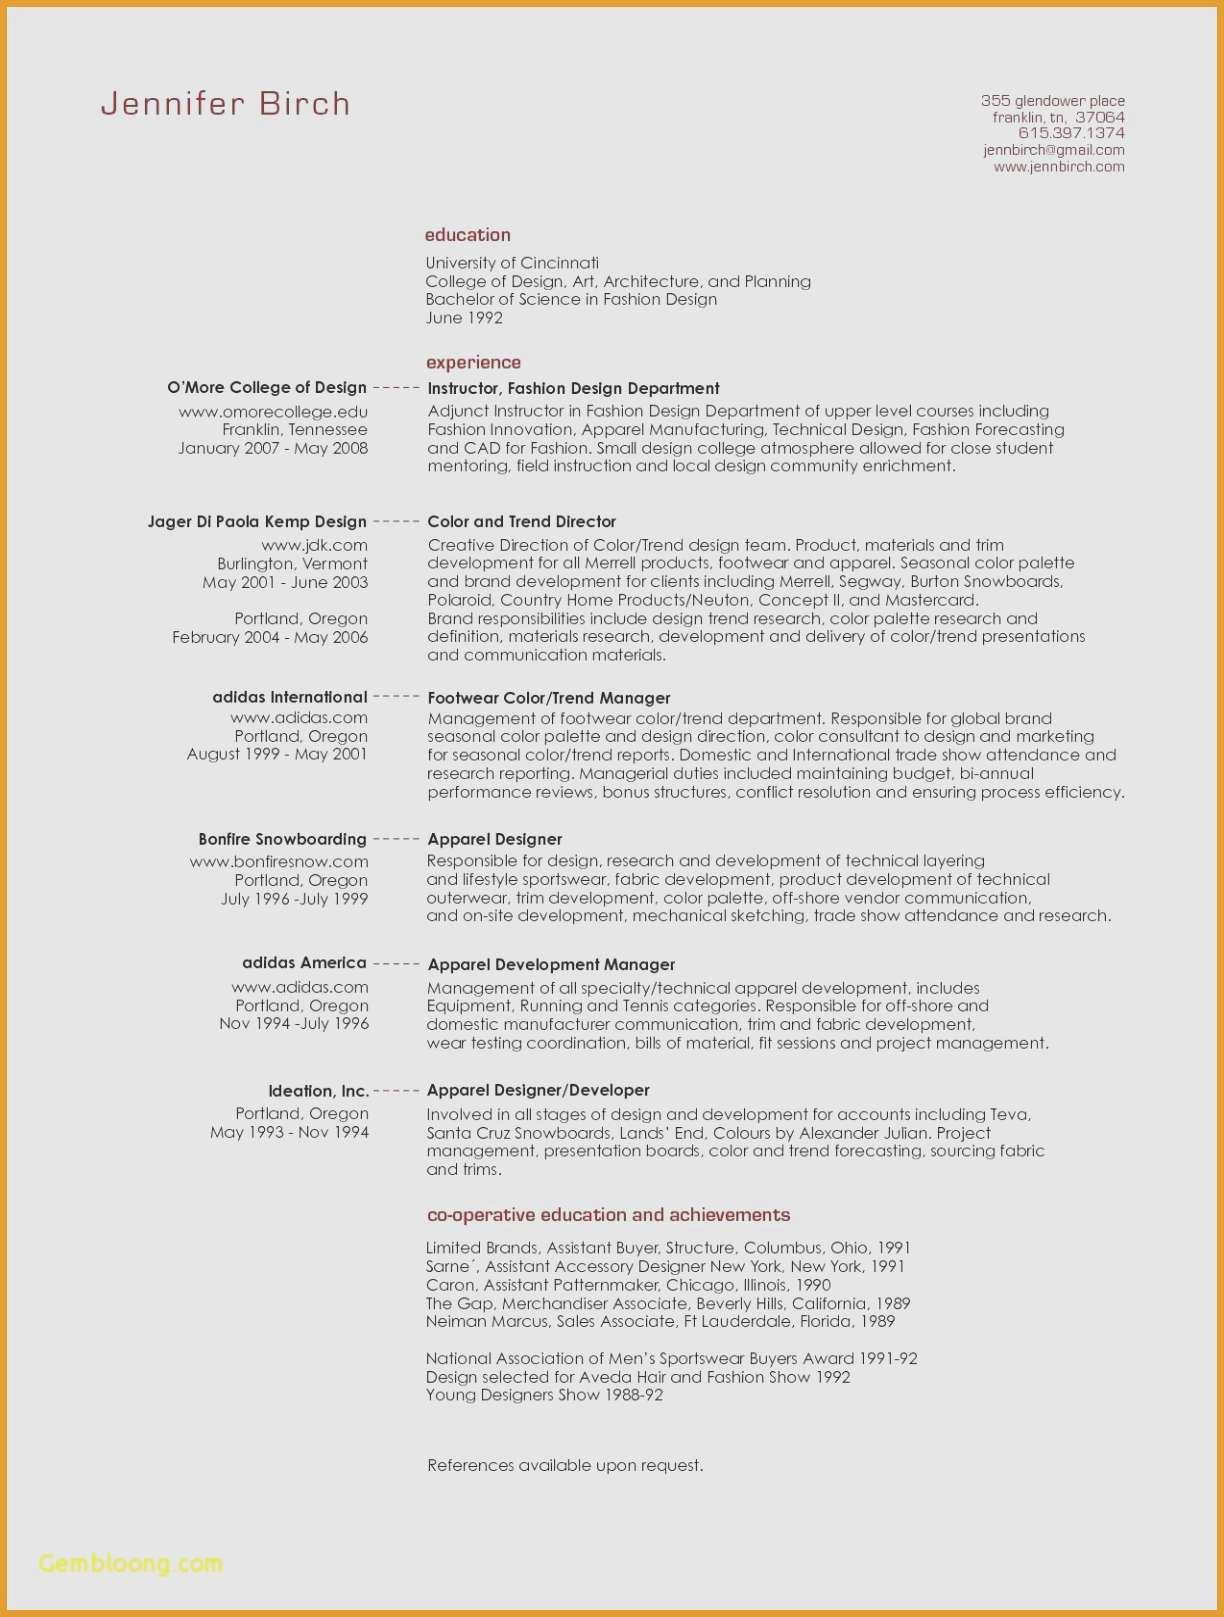 Manufacturing Skills for Resume - Resume Experience Example Fresh Resume for It Job Unique Best